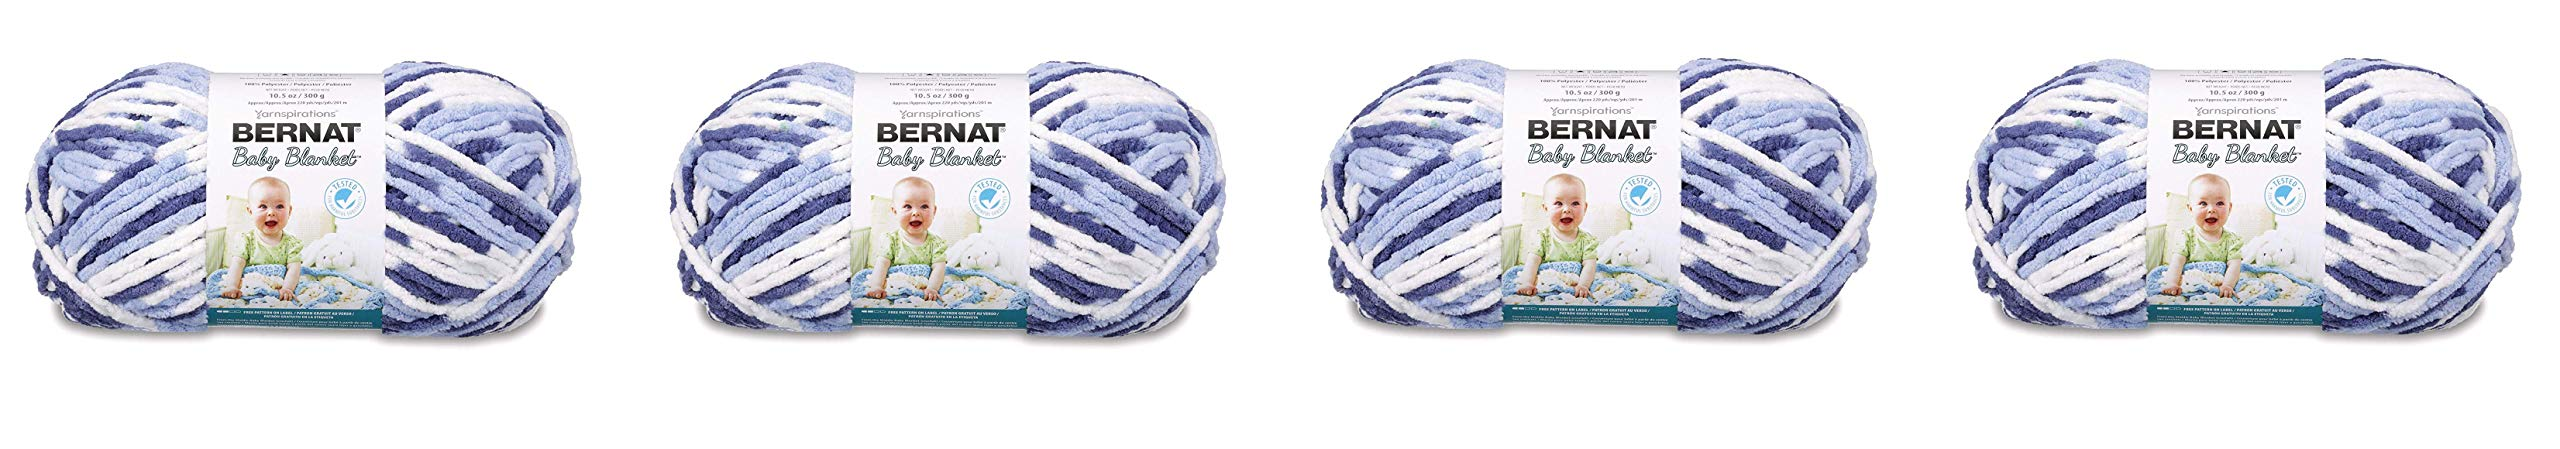 Bernat Baby Blanket Yarn - (6) Super Bulky Gauge - 10.5 oz - Blue Dreams - Single Ball Machine Wash & Dry (16110404134) (4-Pack)